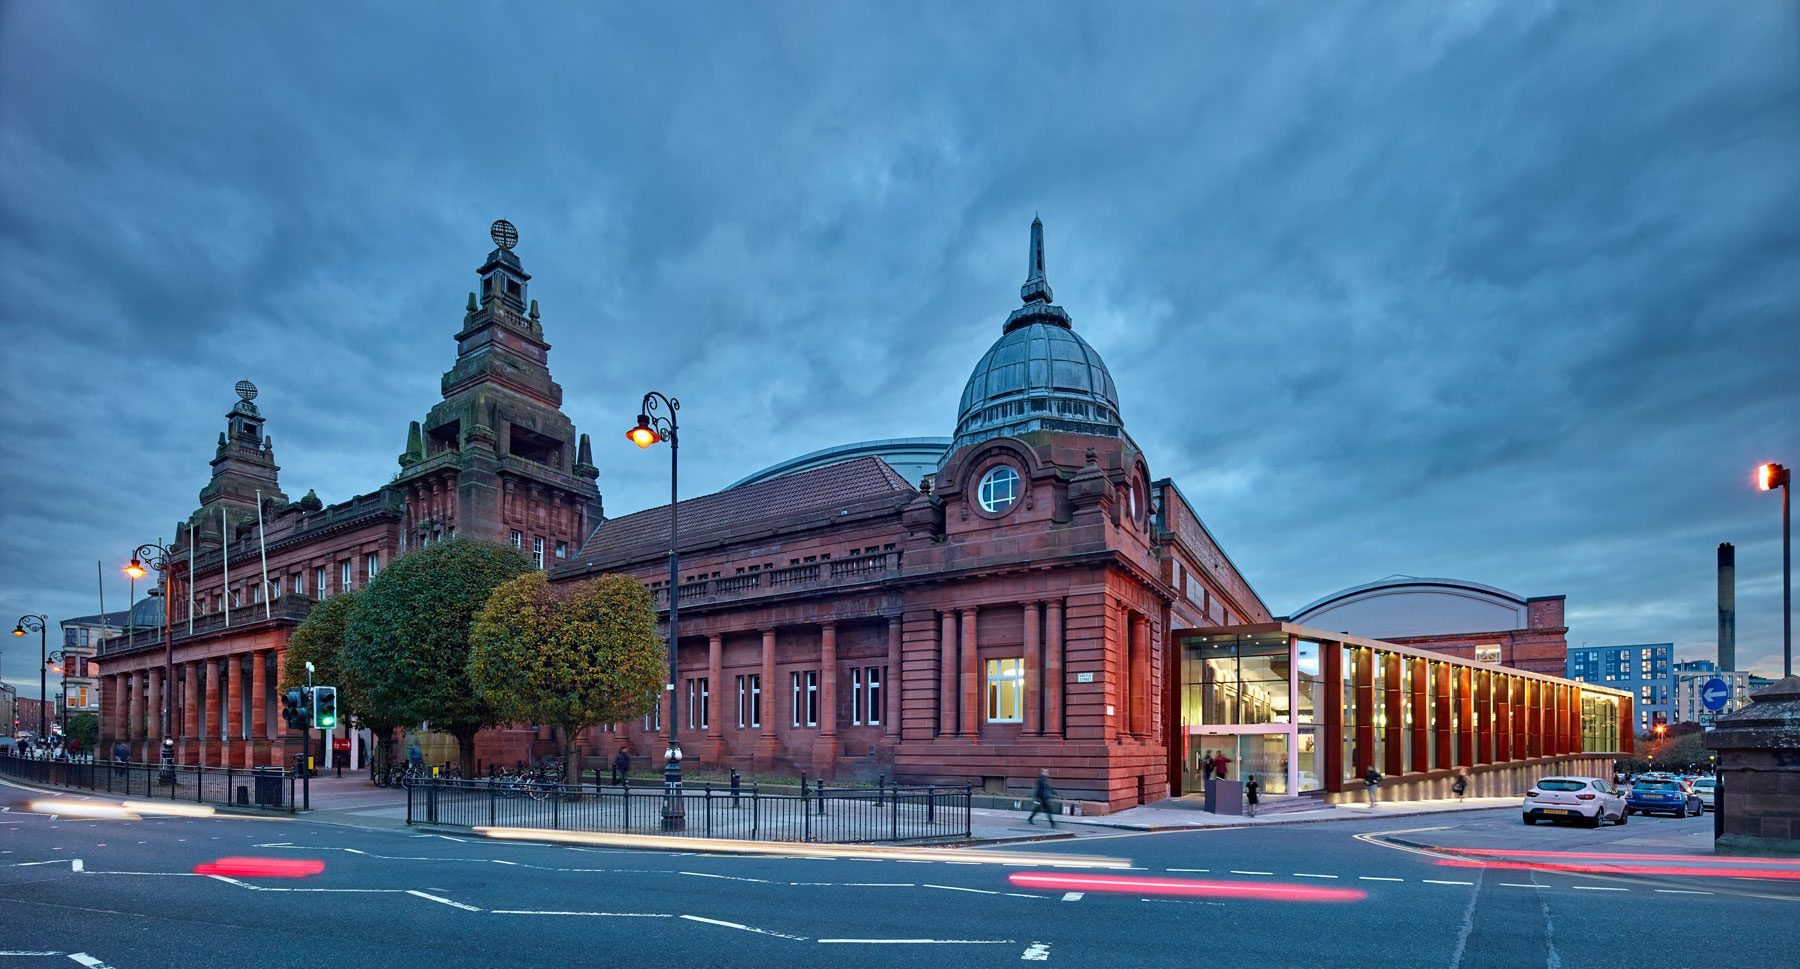 Kelvin Hall, Phase 1